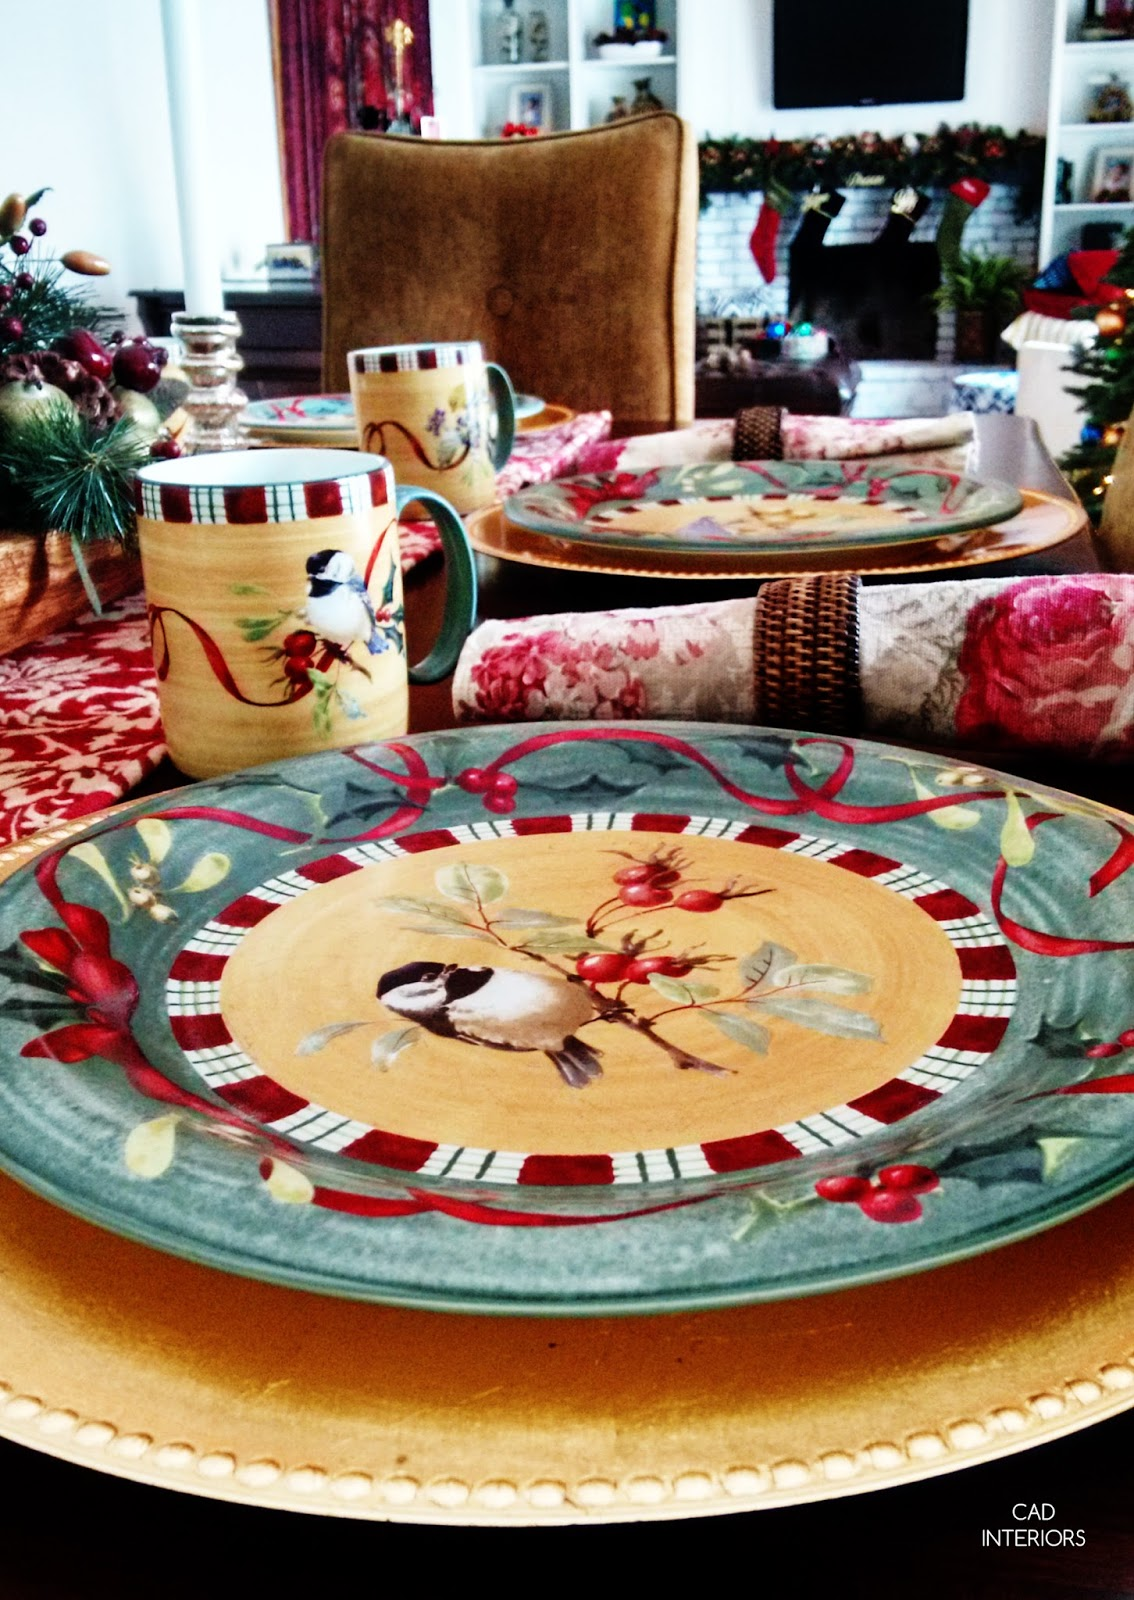 Christmas holiday decorating table setting traditional classic Lenox dishes red green plaid country vintage